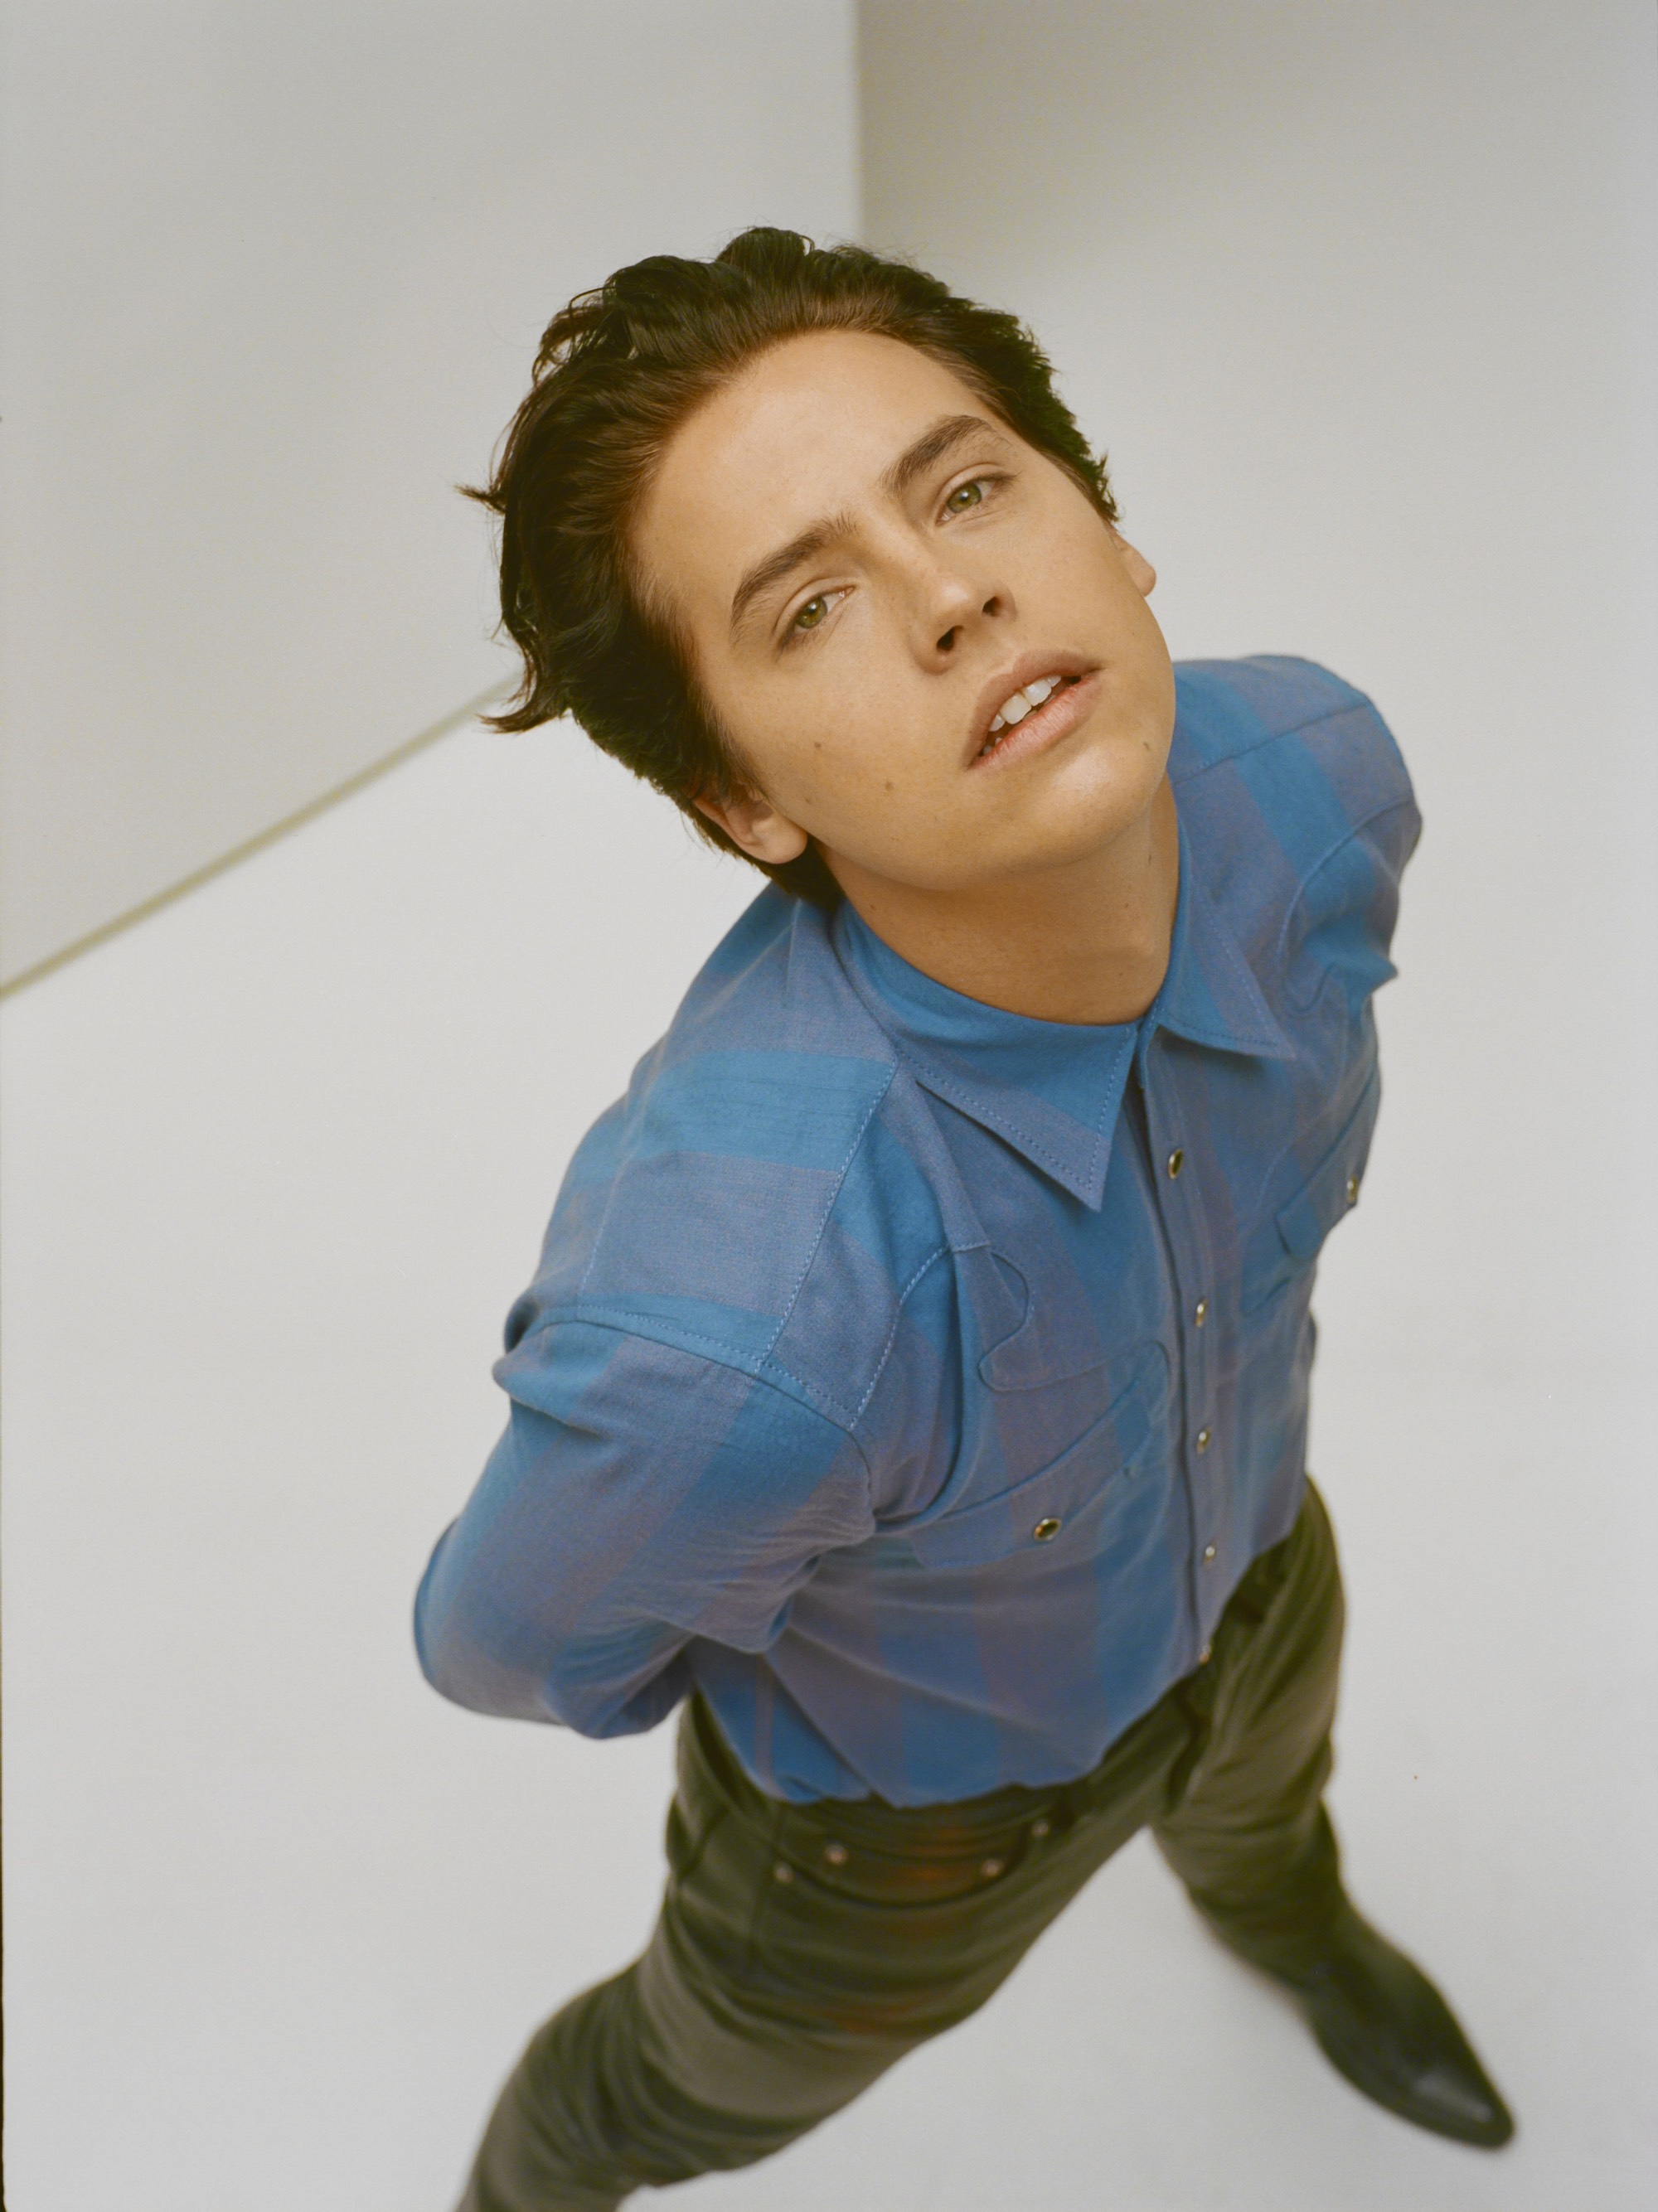 Cole Sprouse on the Spring 19 cover of Wonderland in blue shirt